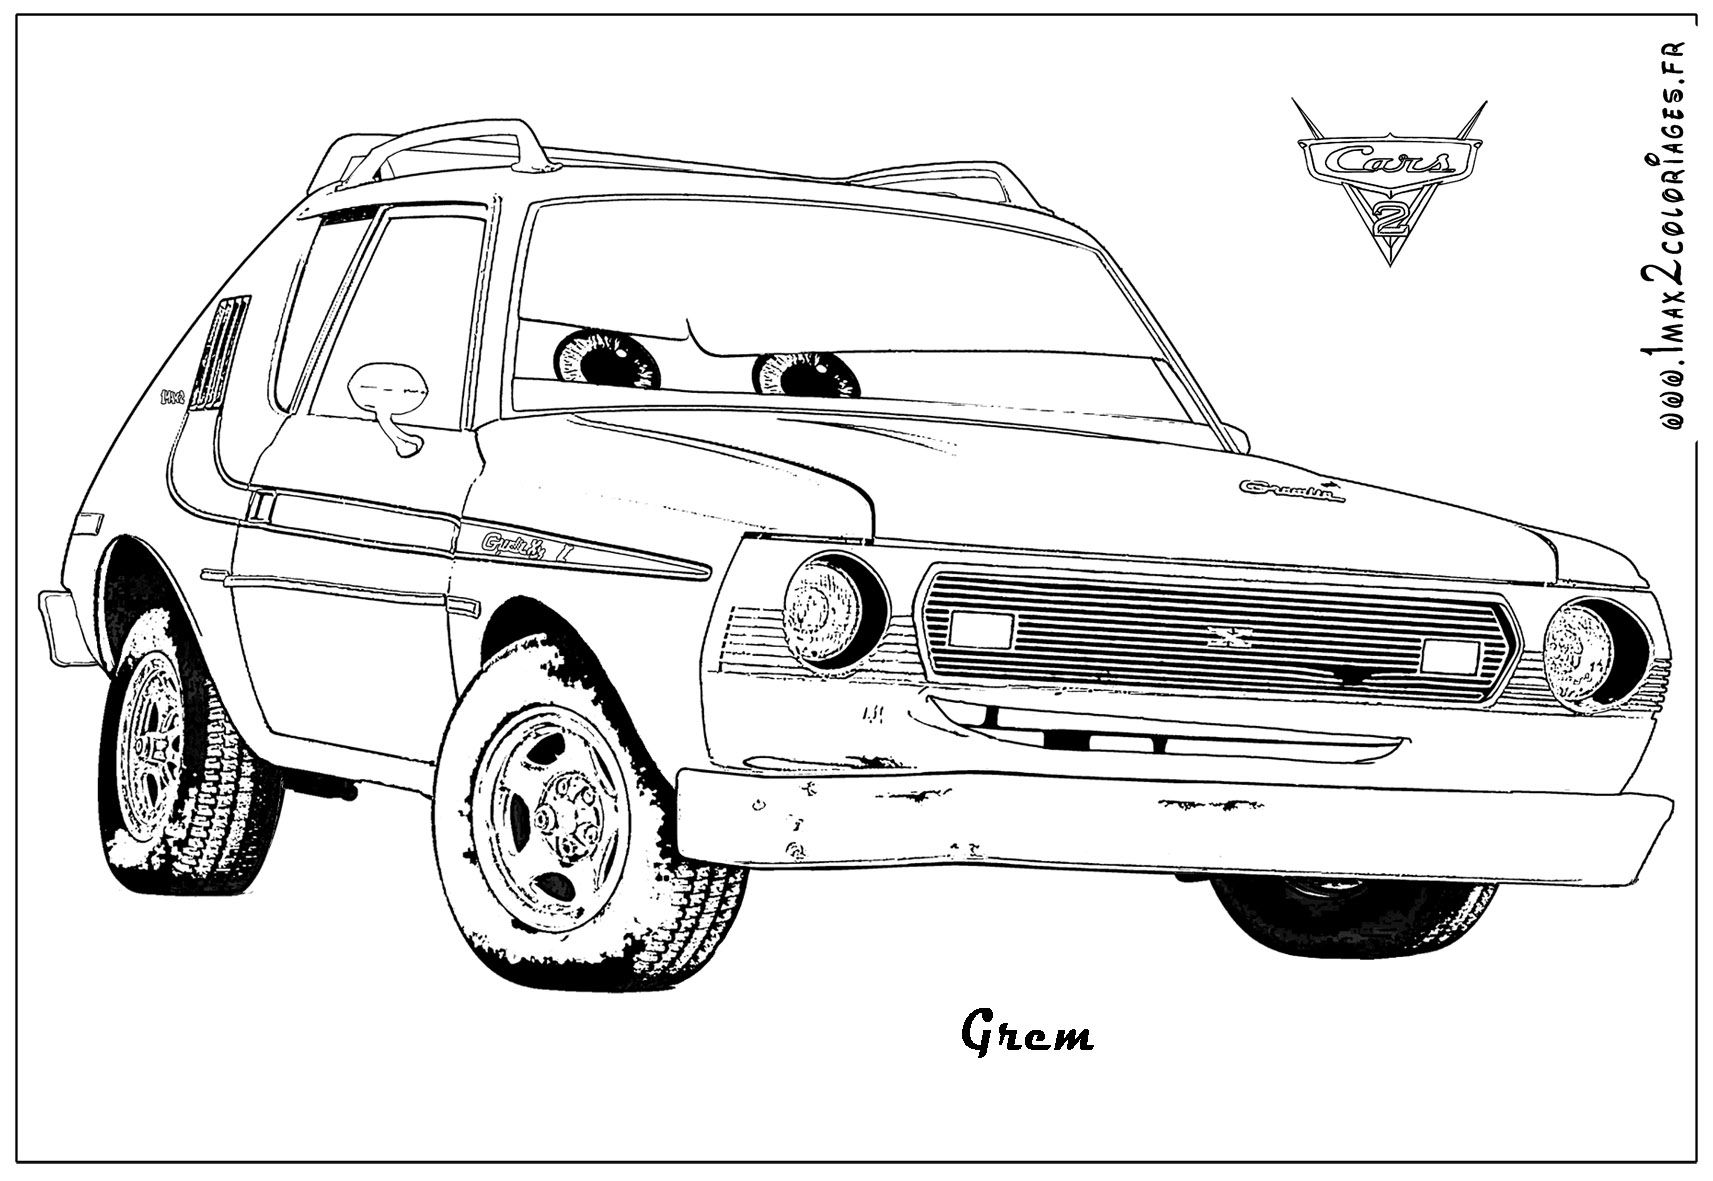 Cars printable coloring pages grem cars colouring artworks